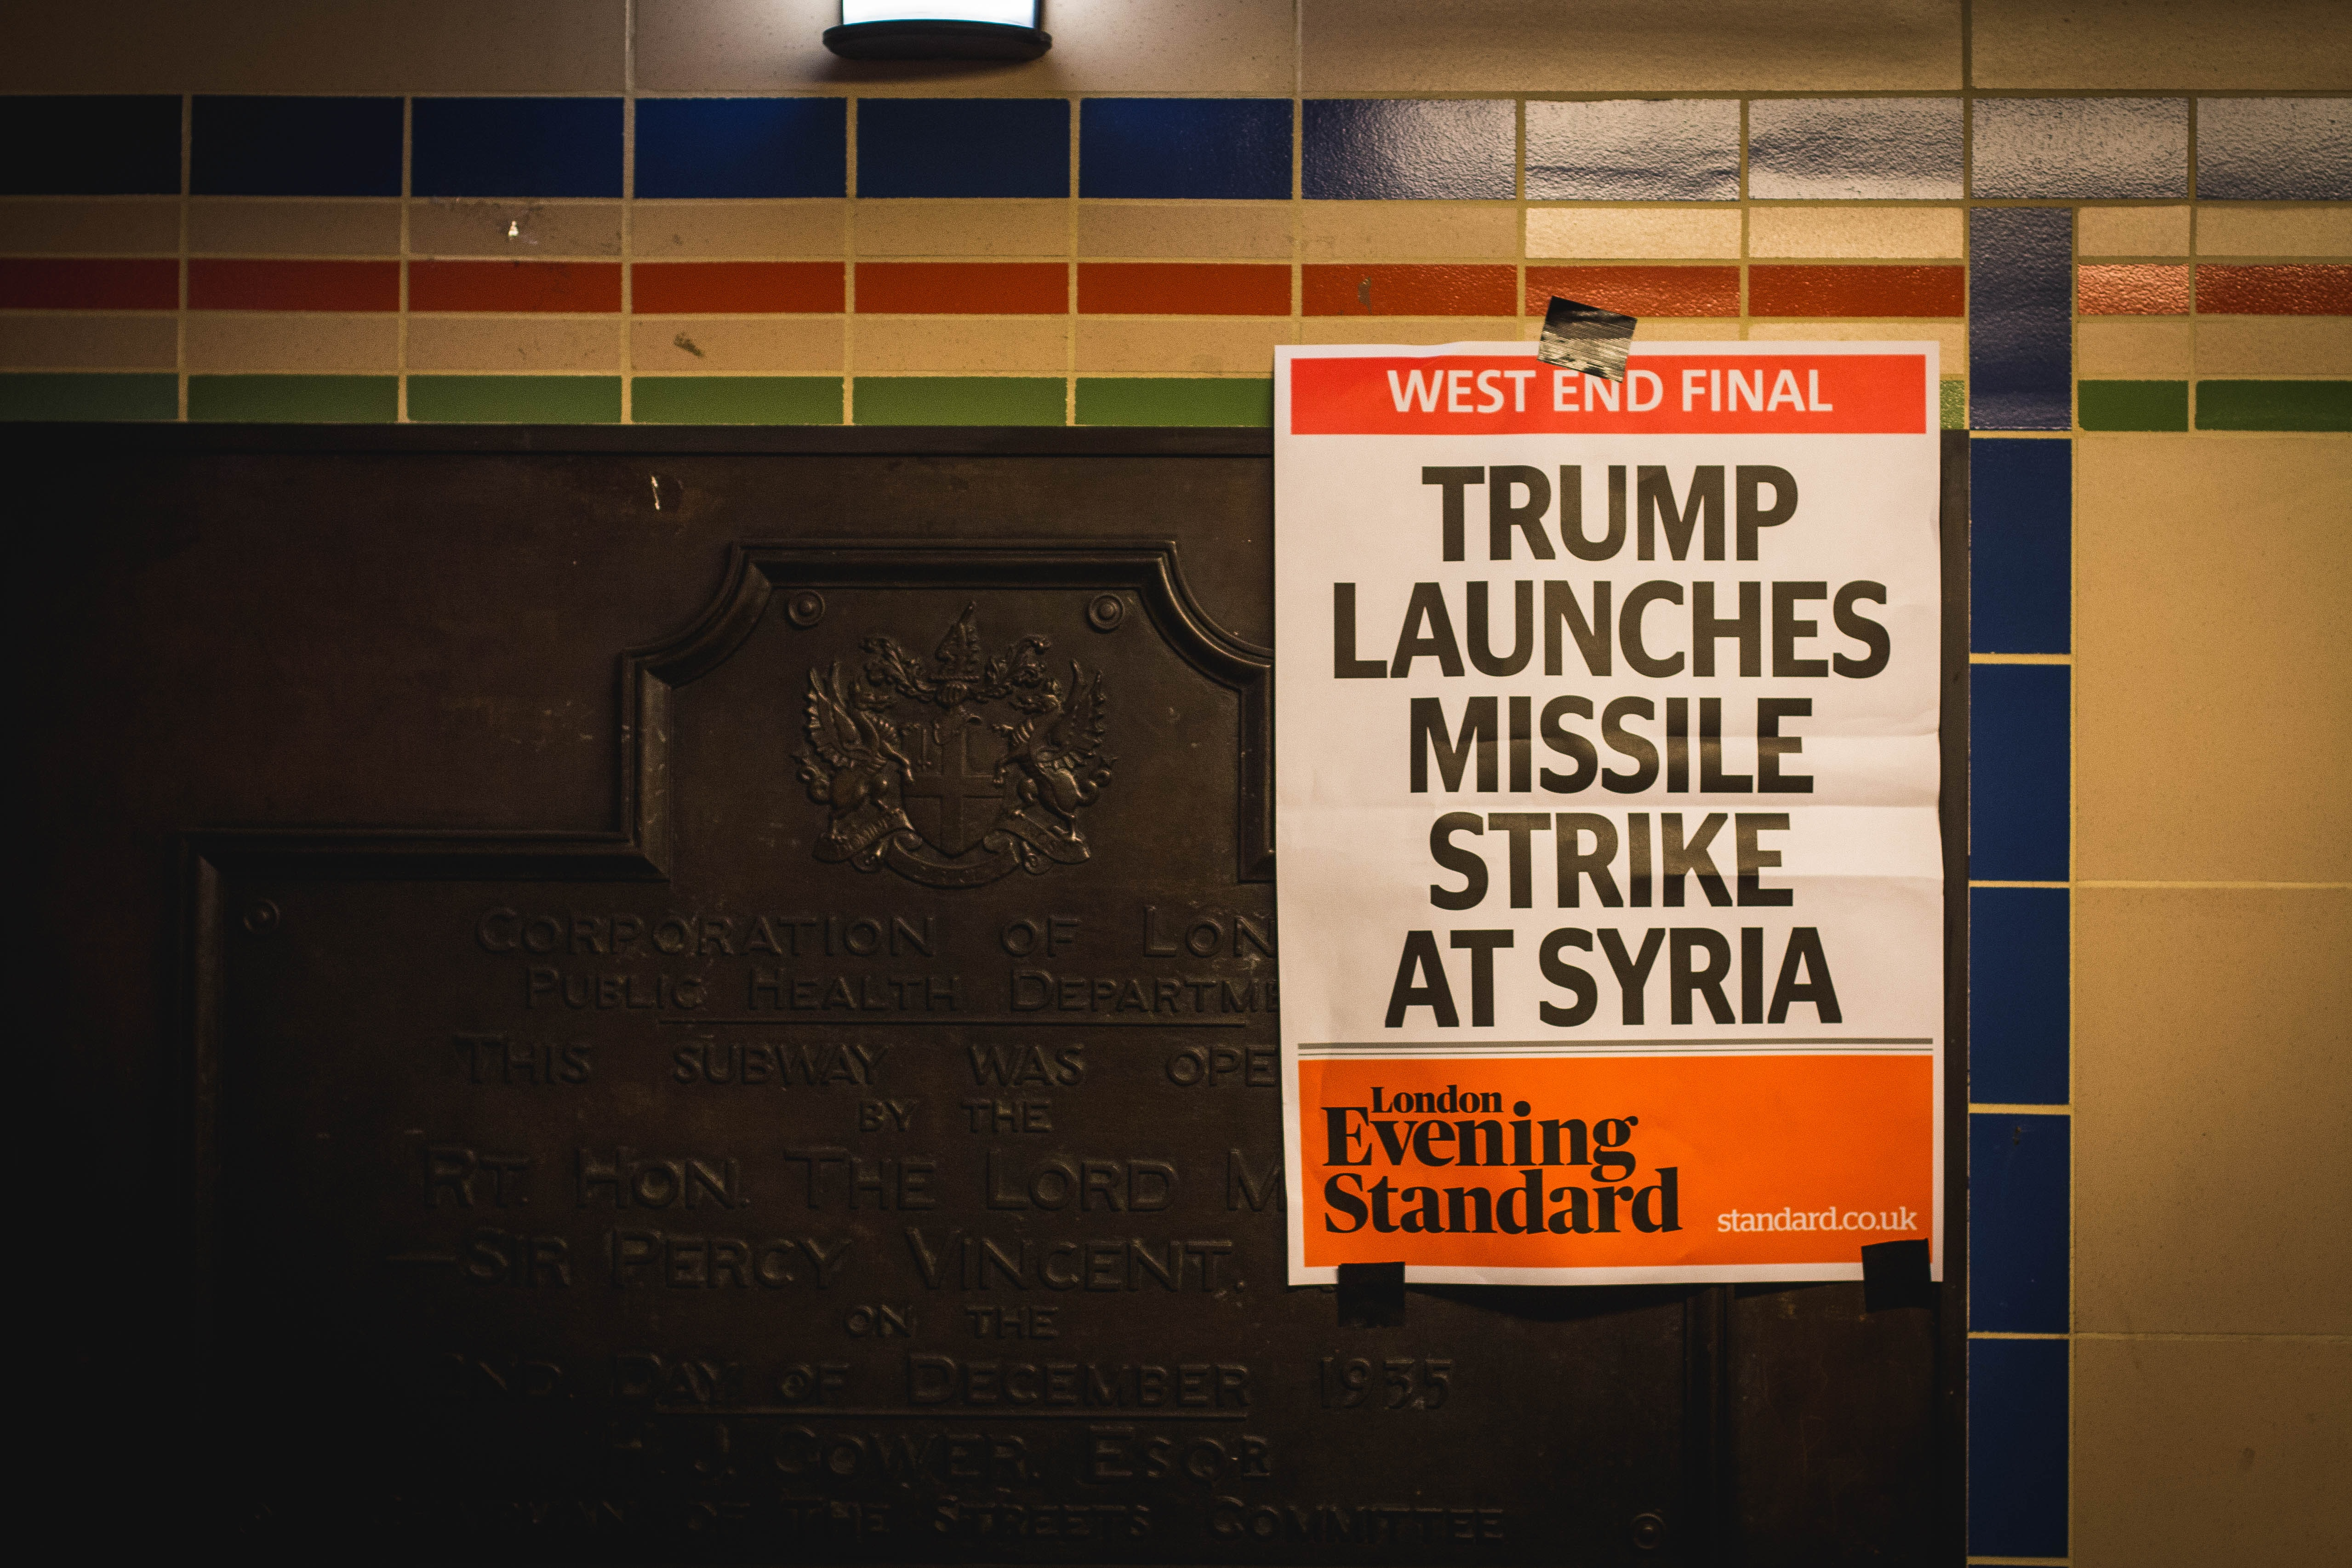 Trump Launches Missiles Strike At Syria poster